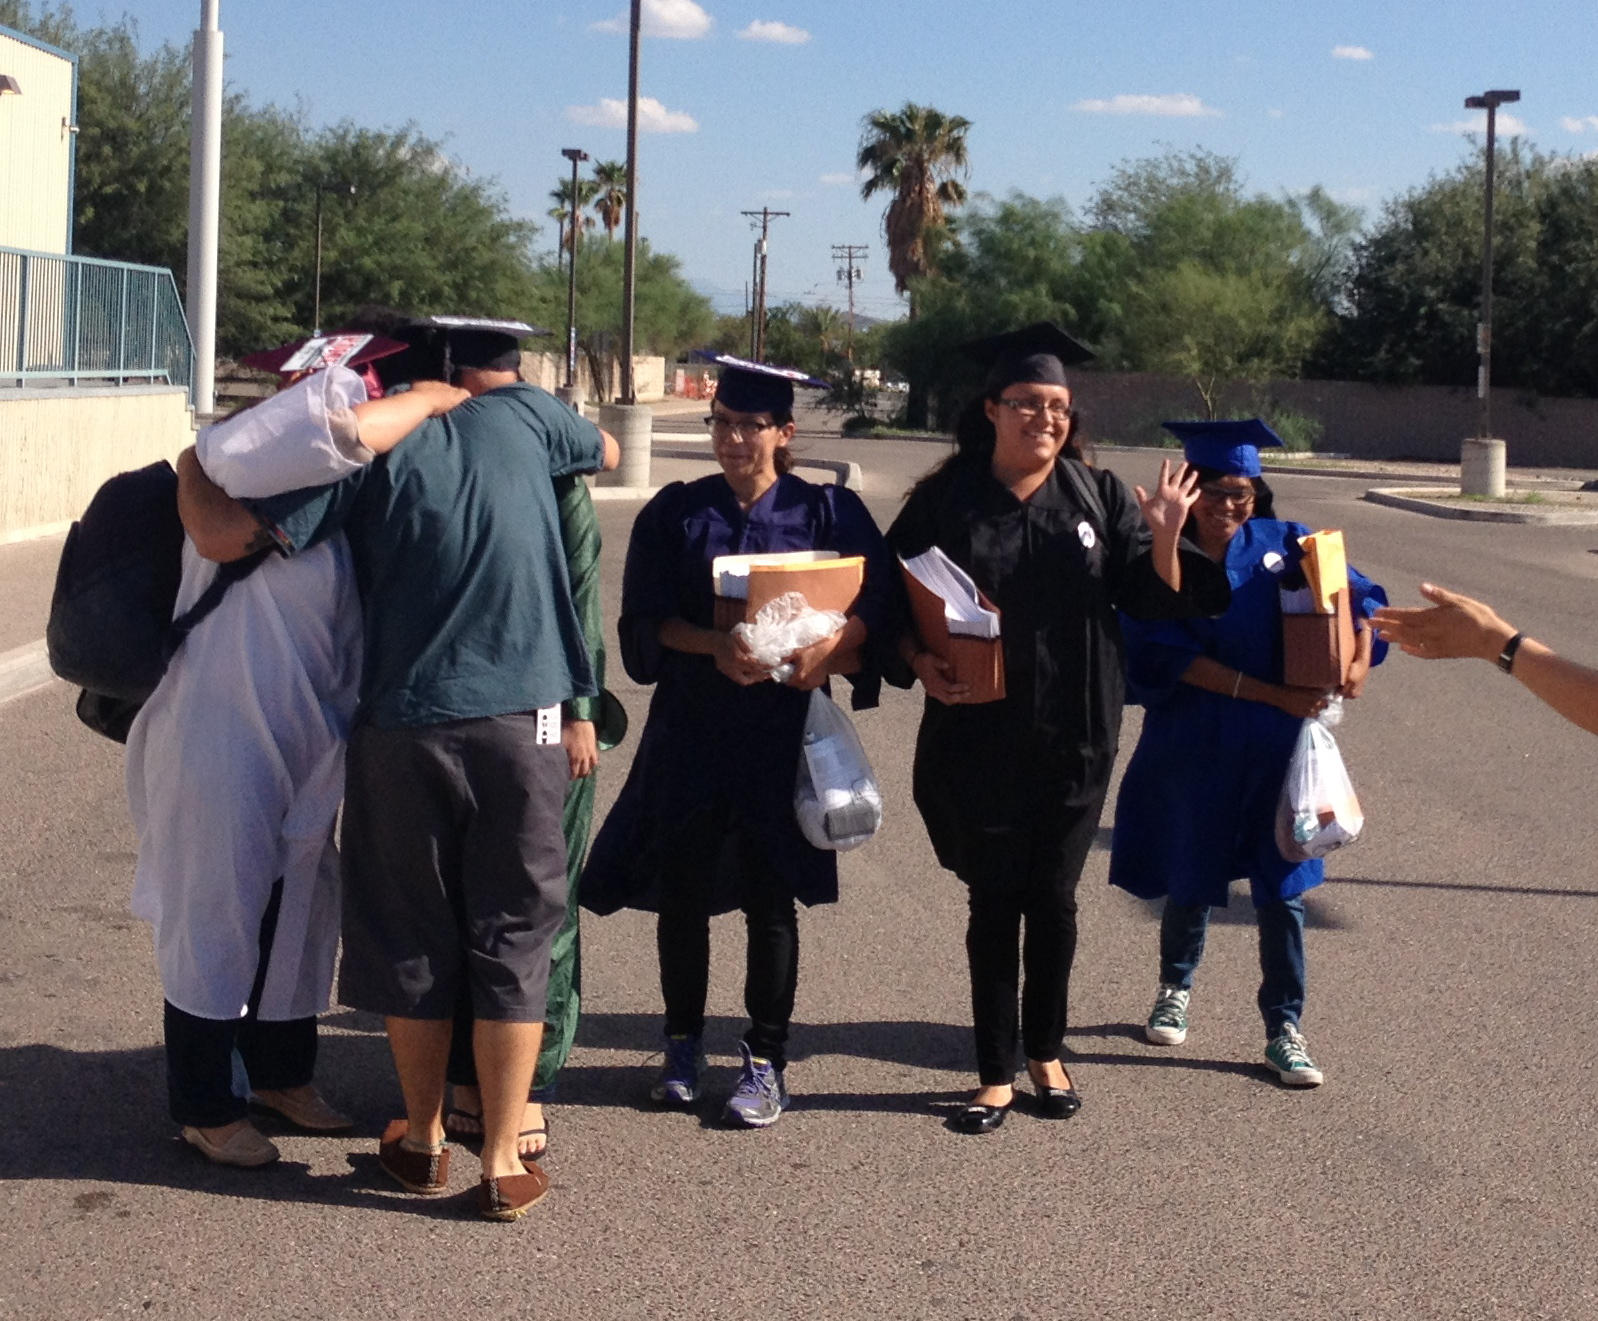 Women of the Dream 9 in graduation attire walking and hugging